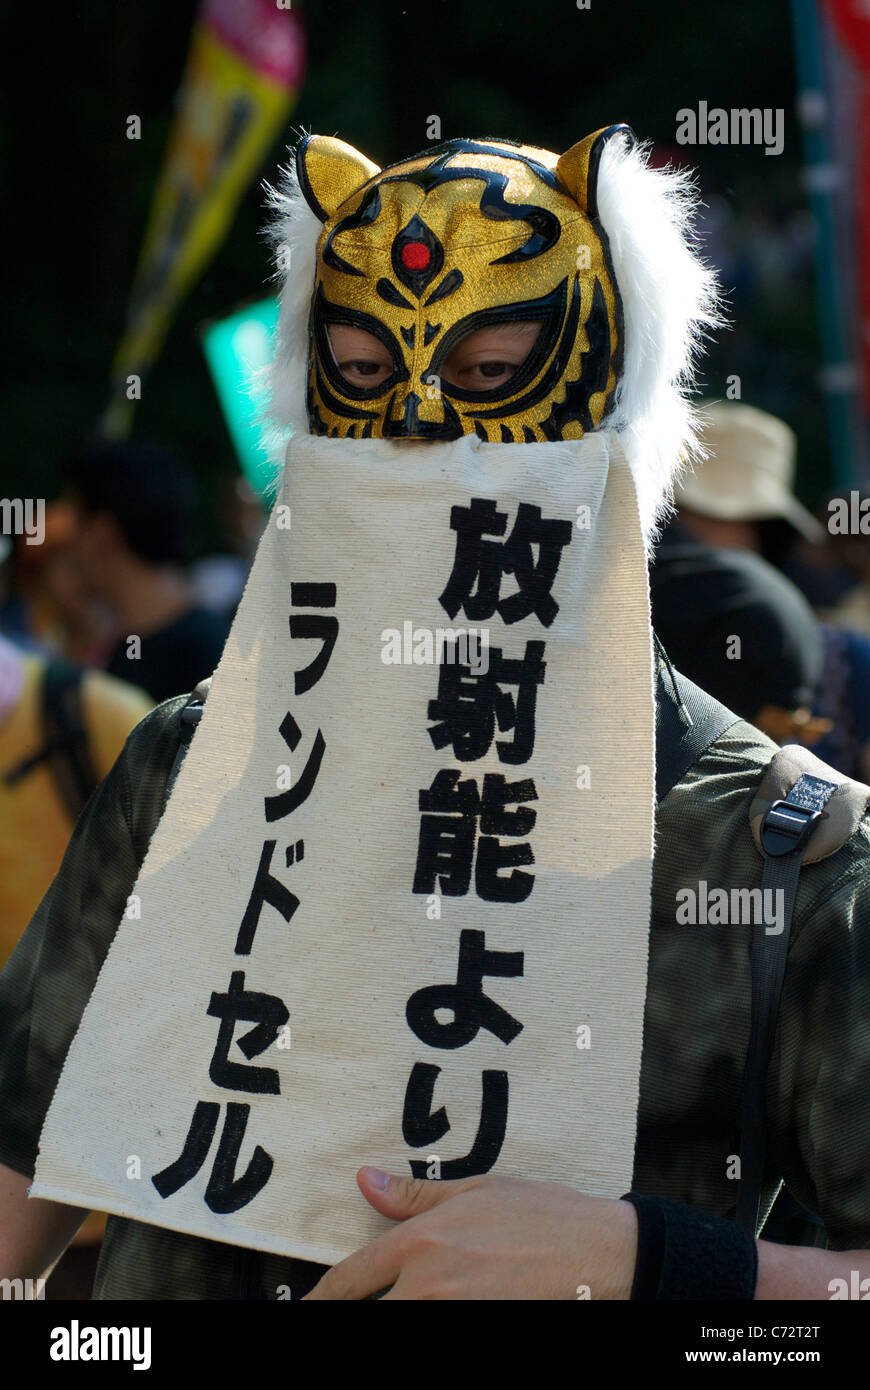 An Anti-Nuclear protester in a tiger mask attends a rally at an Anti-Nuclear protest on the 6 month anniversary - Stock Image